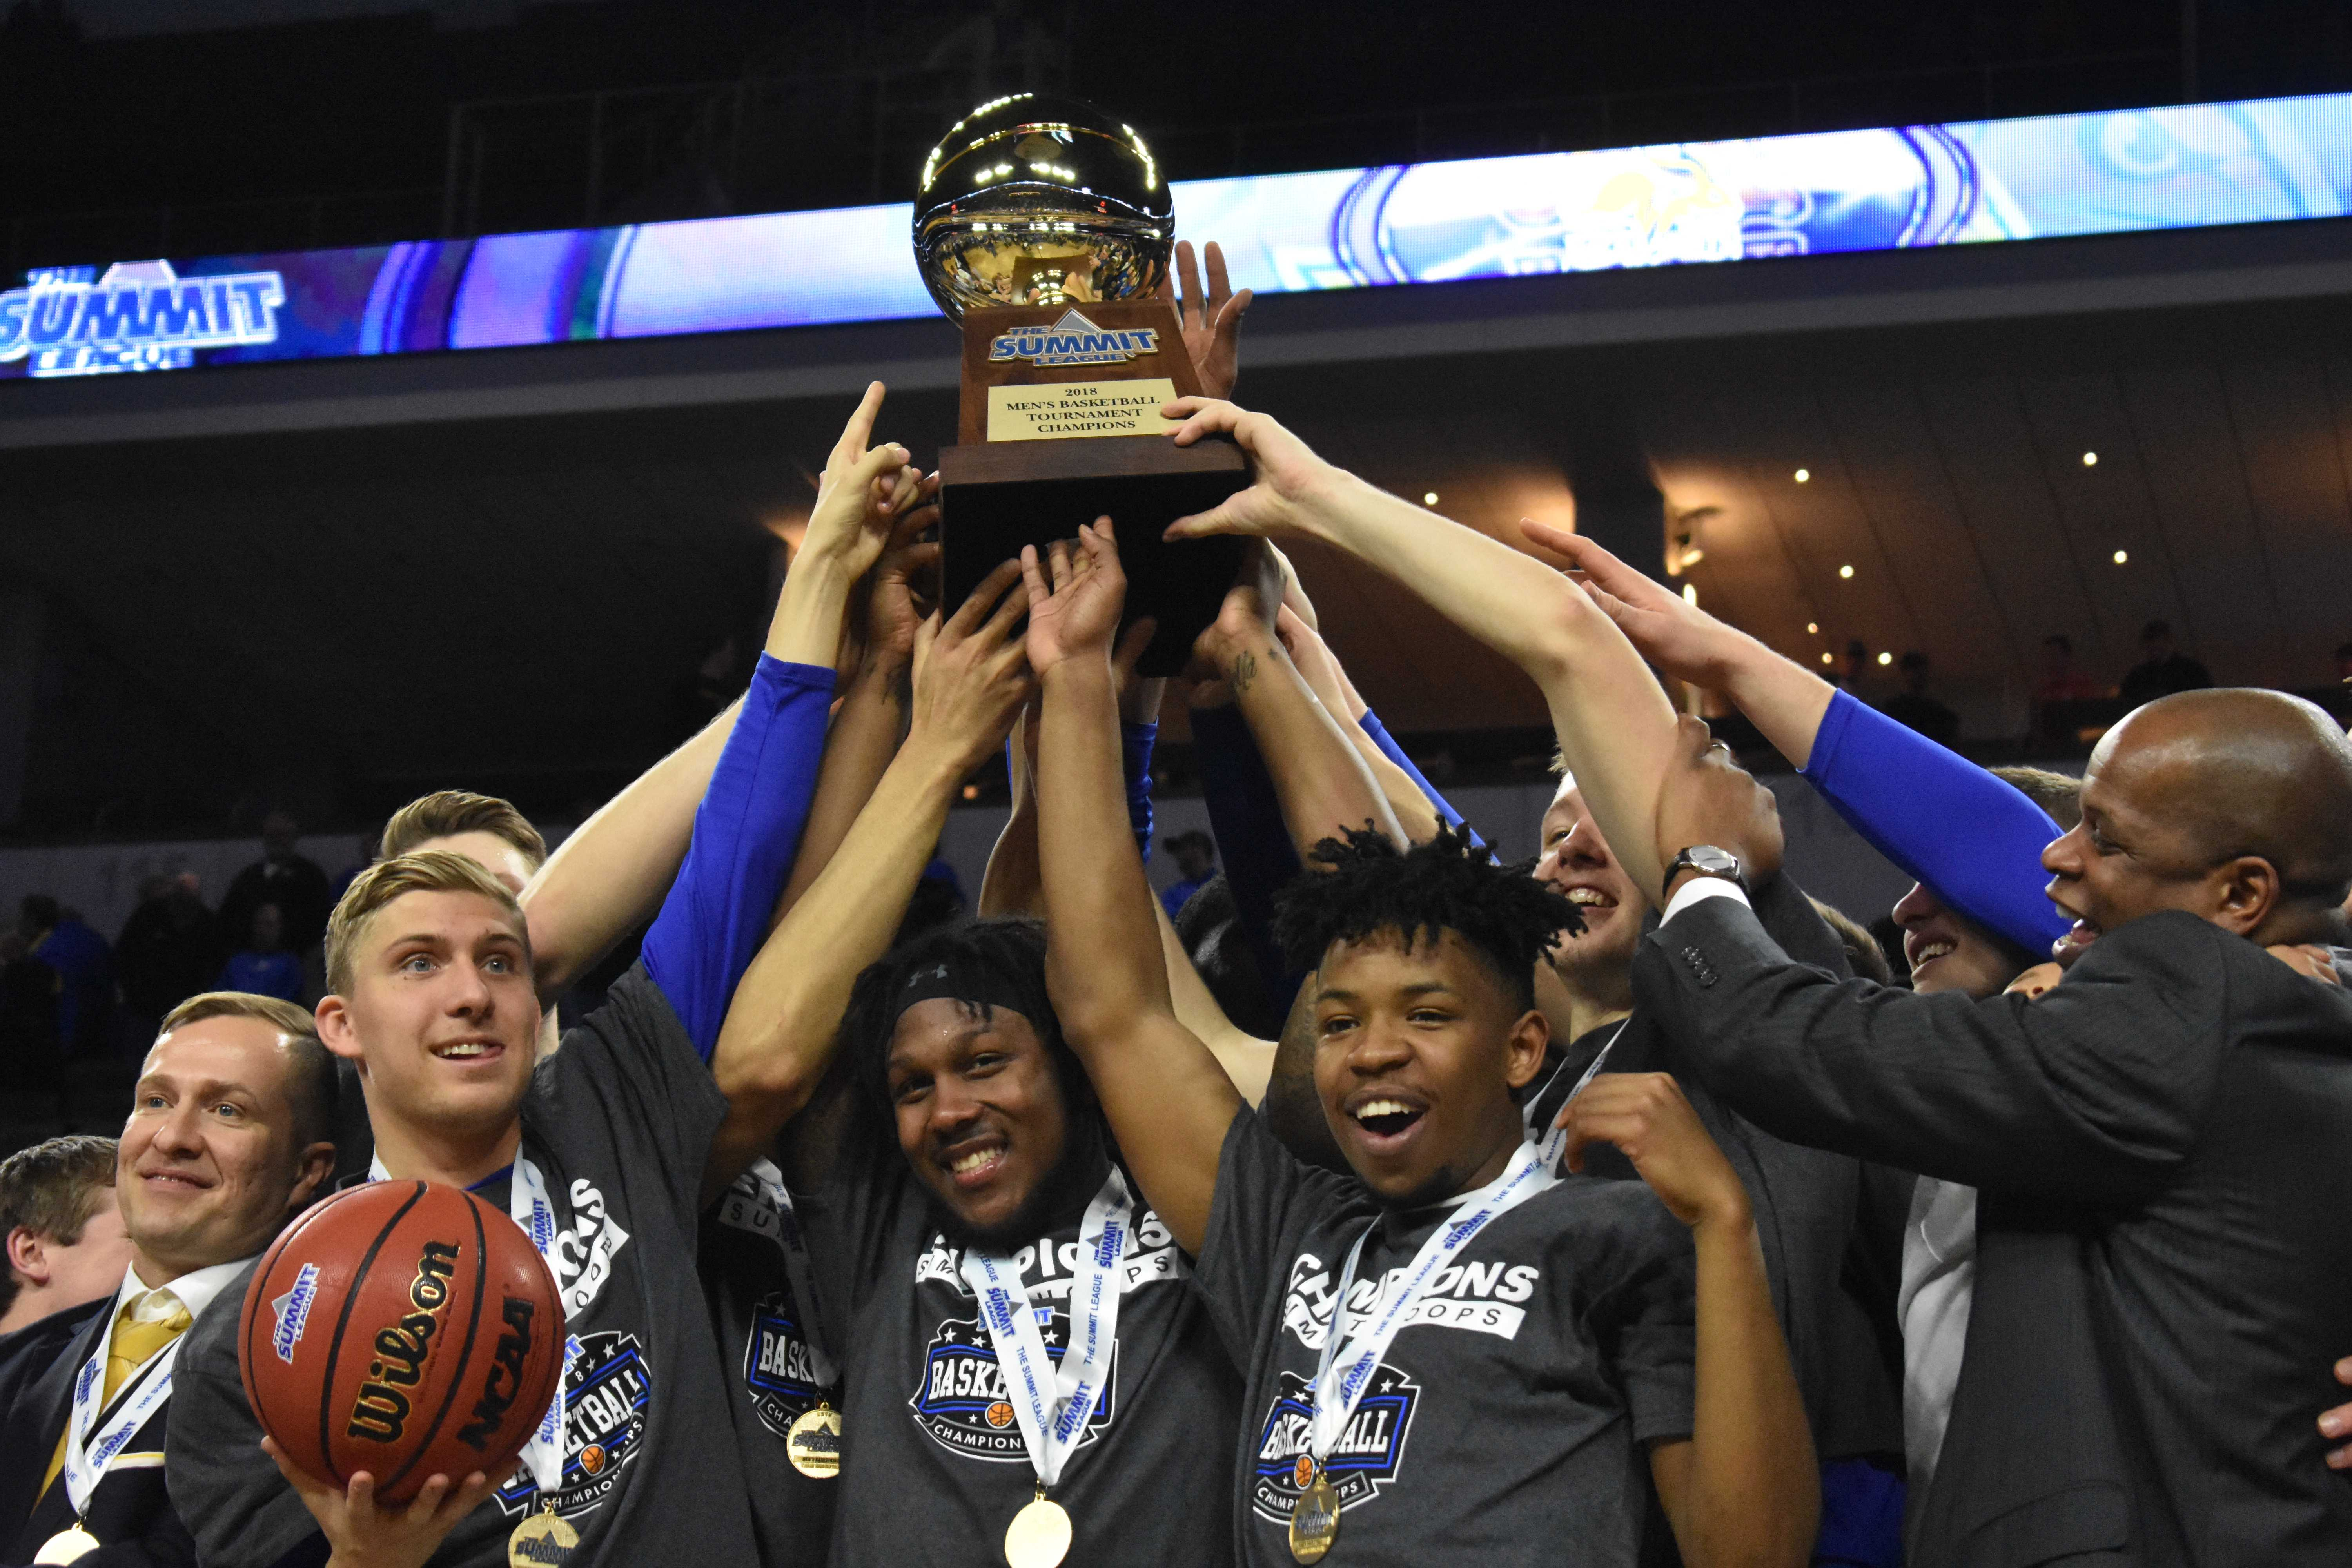 ABBY FULLENKAMP Beau Brown, David Jenkins Jr., Brandon Key and the rest of the Jacks holdup the Summit League Championship Tournament trophy after the win against USD March 6. The Jacks beat the Coyotes 97-87. SDSU is a No. 12 seed in the NCAA Tournament.